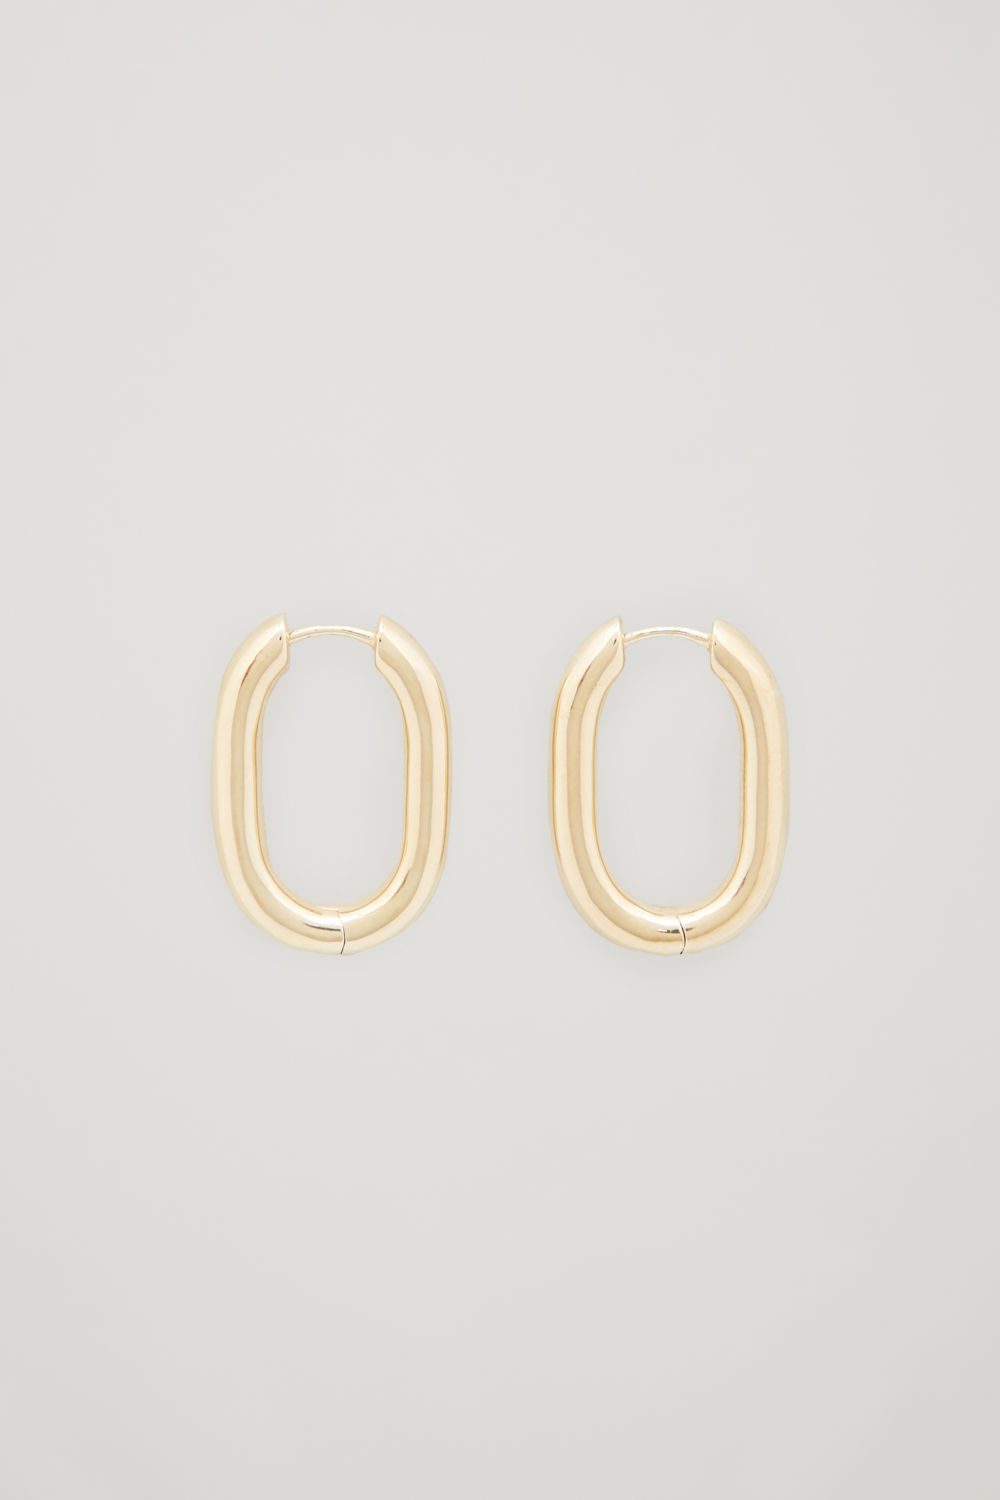 OVAL GOLD-PLATED HOOP EARRINGS